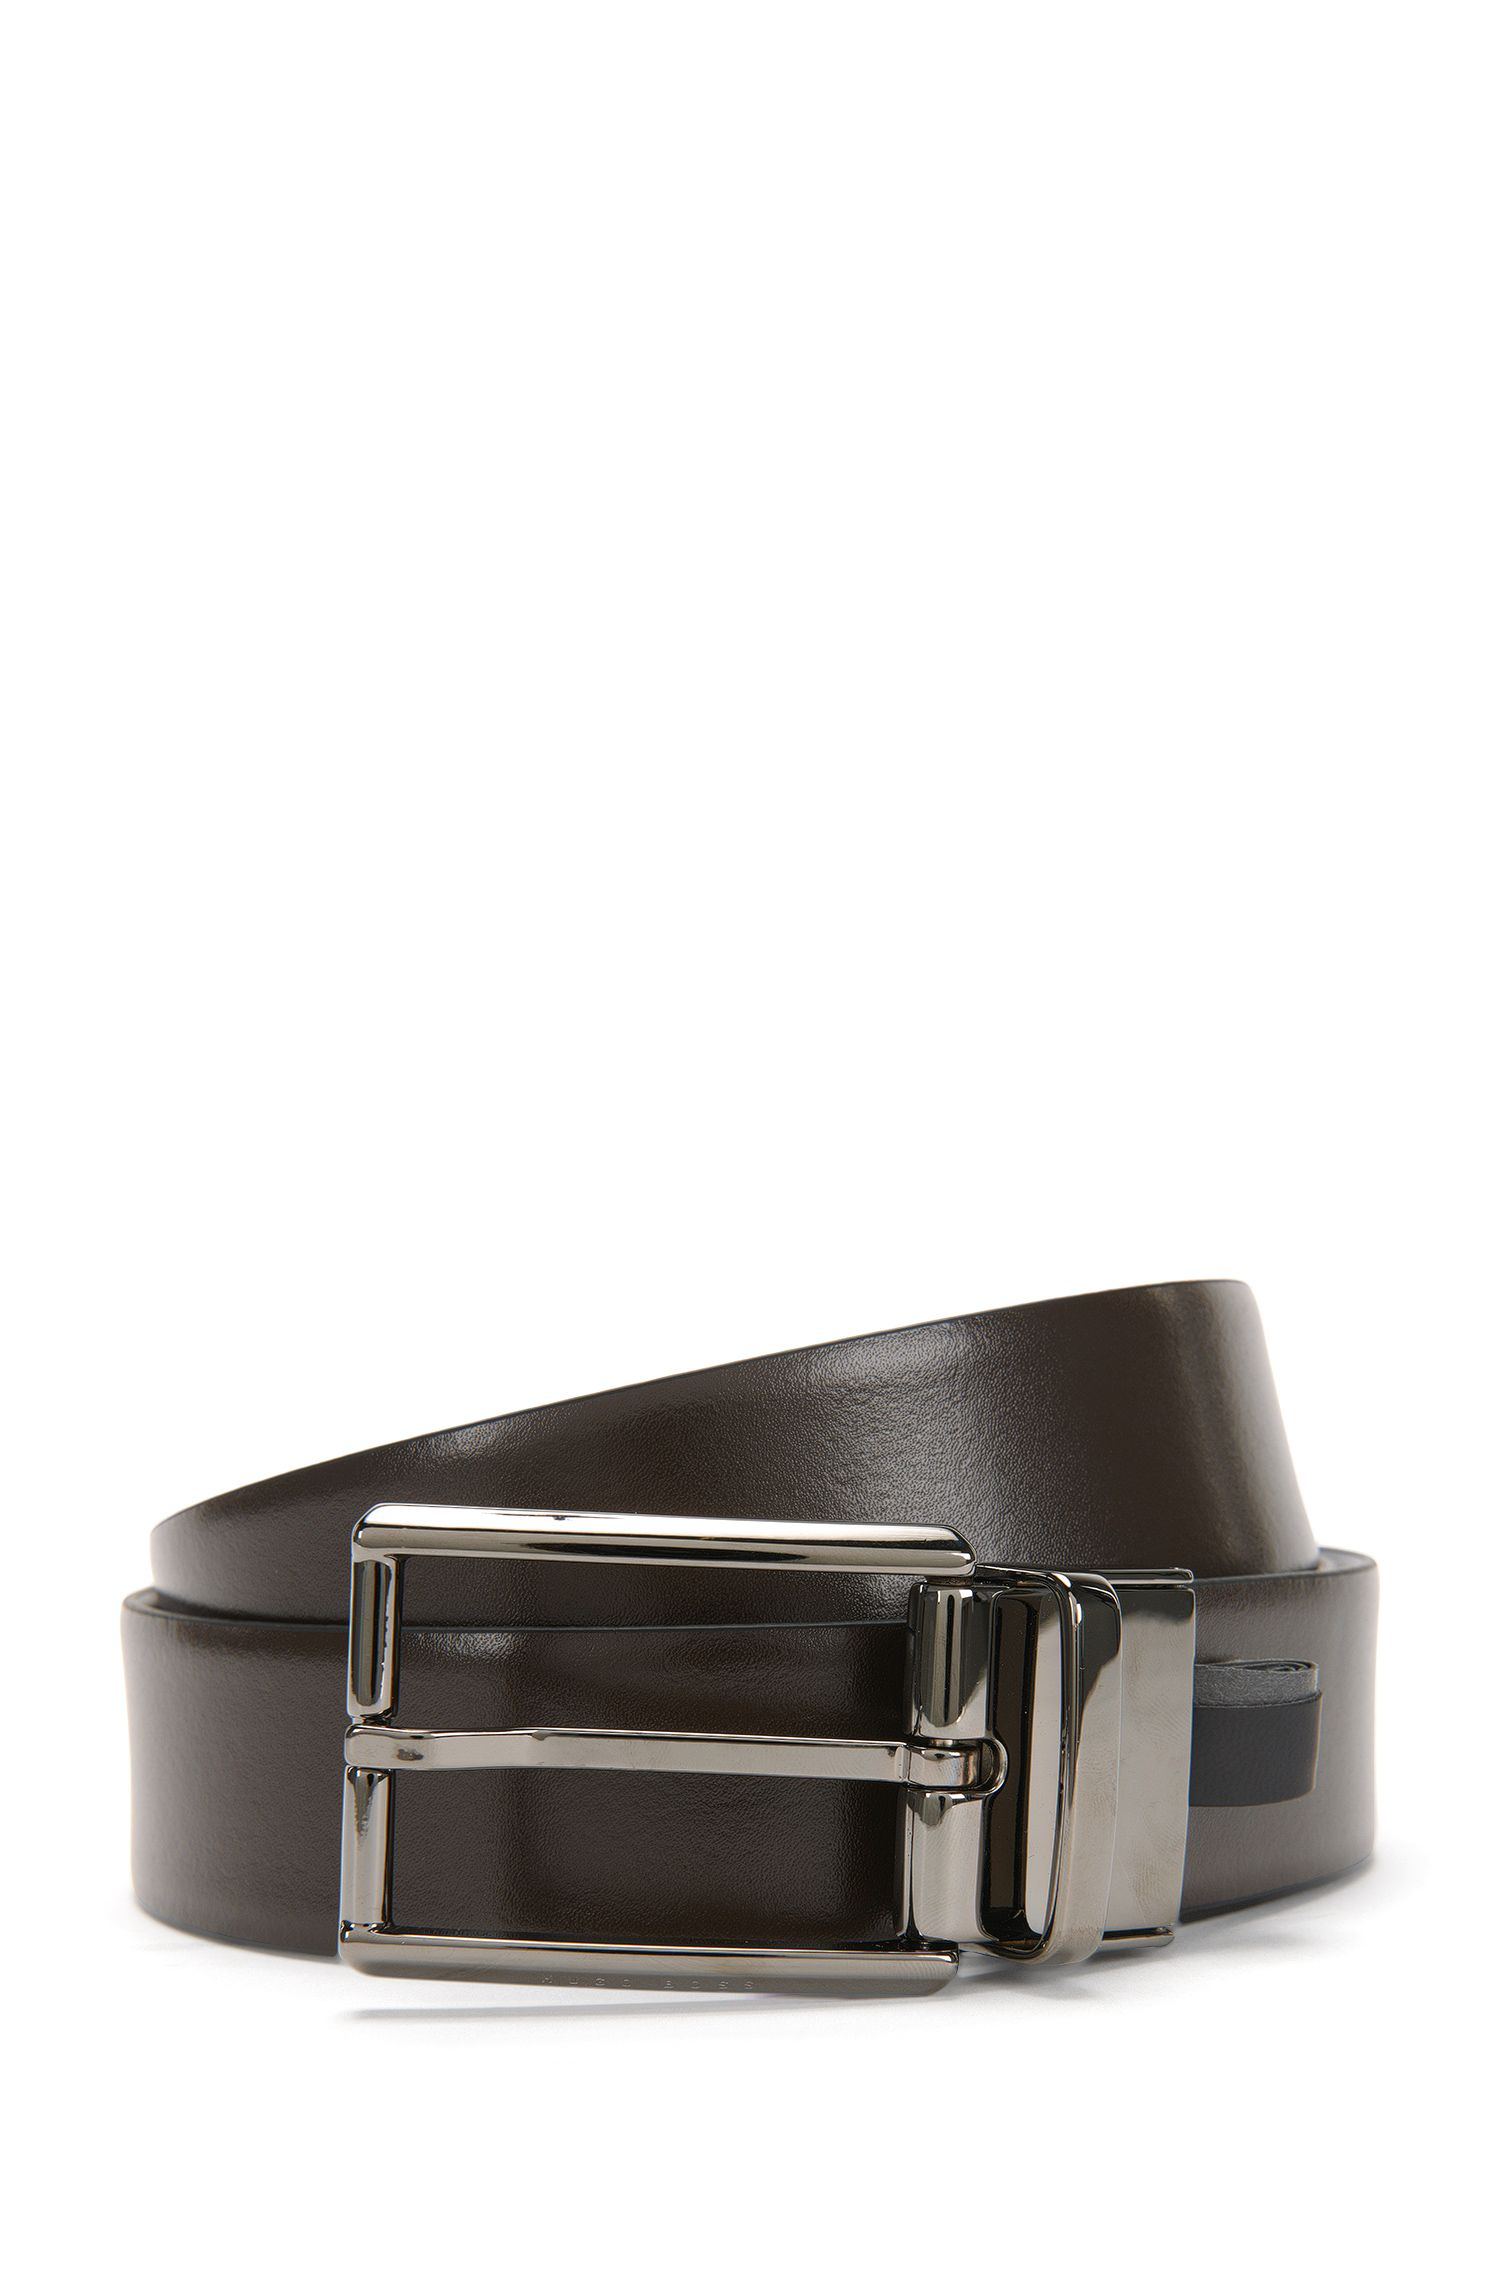 'Omero Or Pp' | Reversible Italian Leather Belt